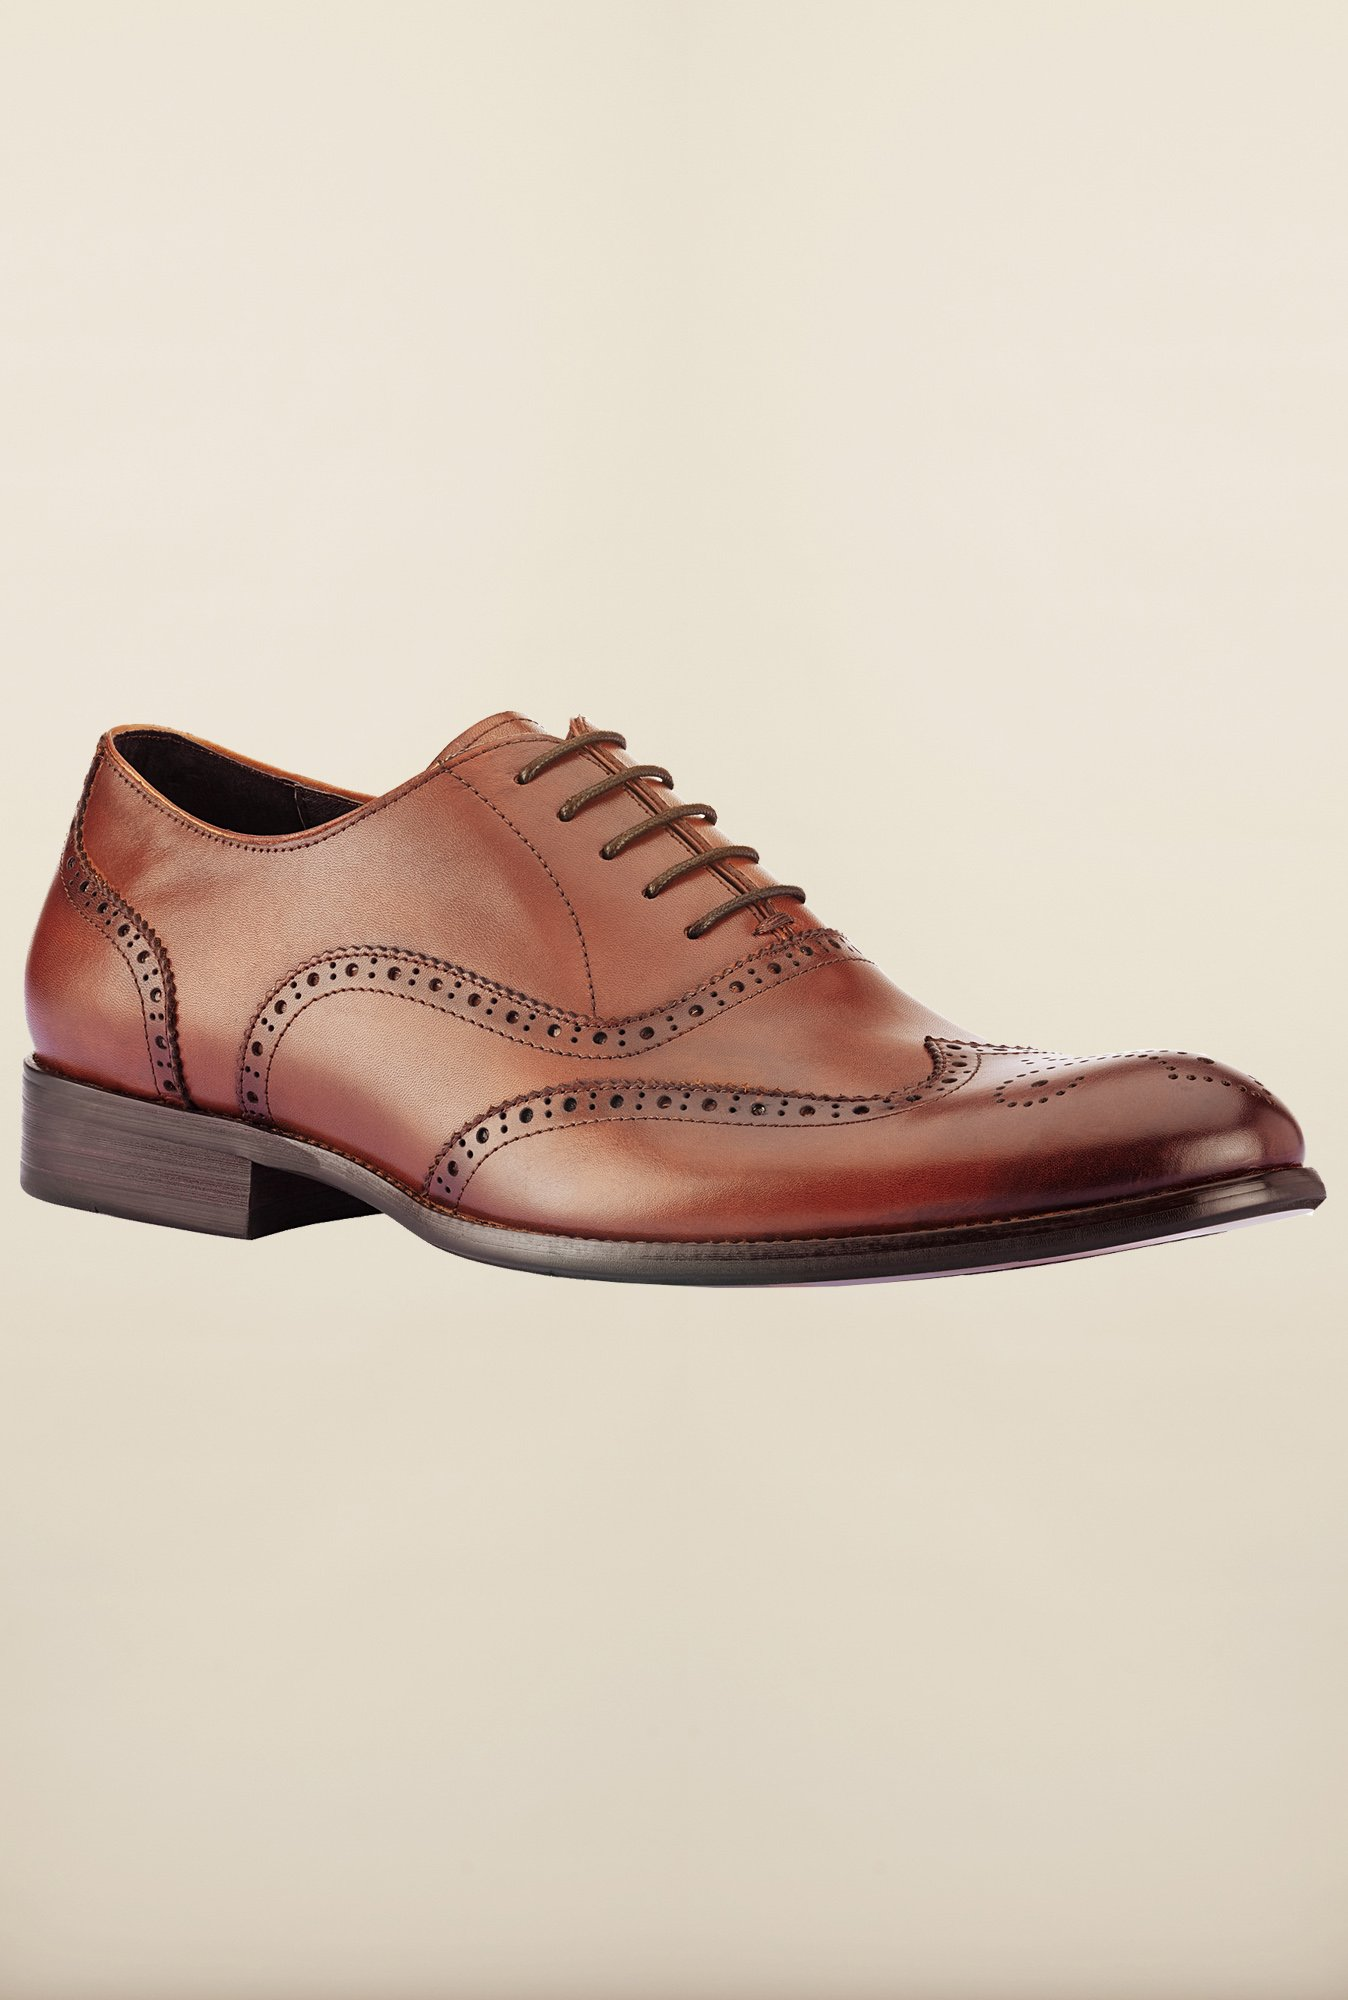 Tresmode Bobrown Brown Brogue Shoes